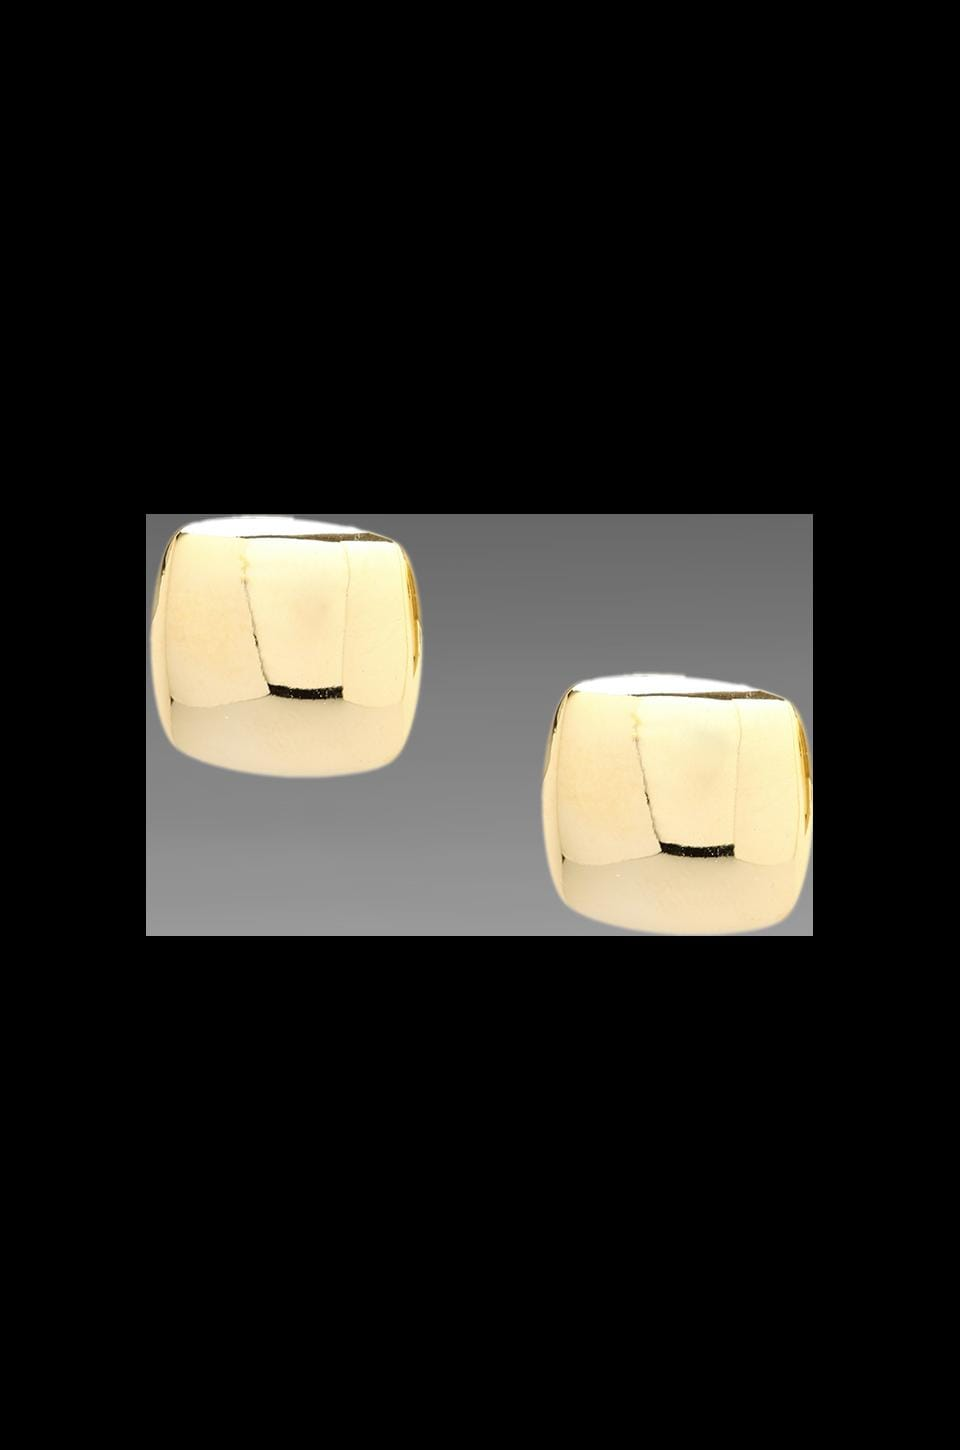 Roman Luxe Puffed Square Earring in Gold